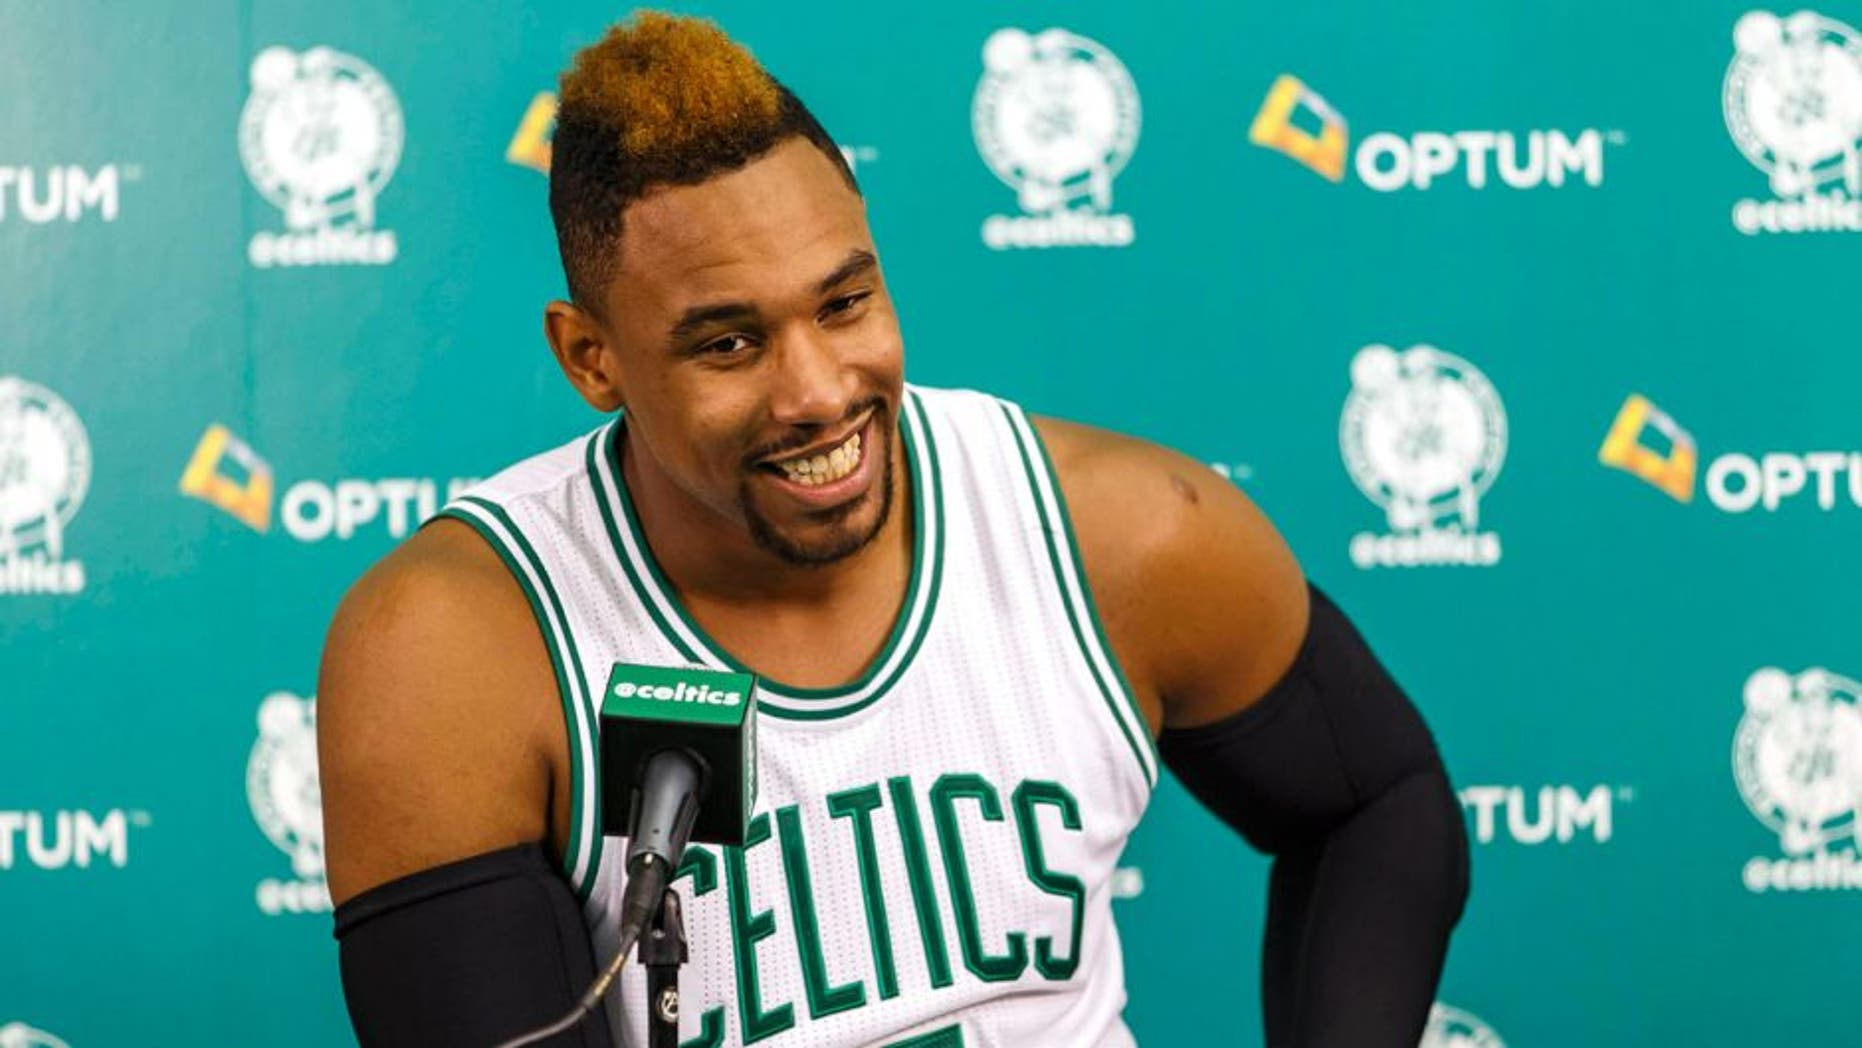 Sep 25, 2015; Waltham, MA, USA; Boston Celtics forward Jared Sullinger (7) during media day at the Boston Celtic Practice Facility. Mandatory Credit: David Butler II-USA TODAY Sports